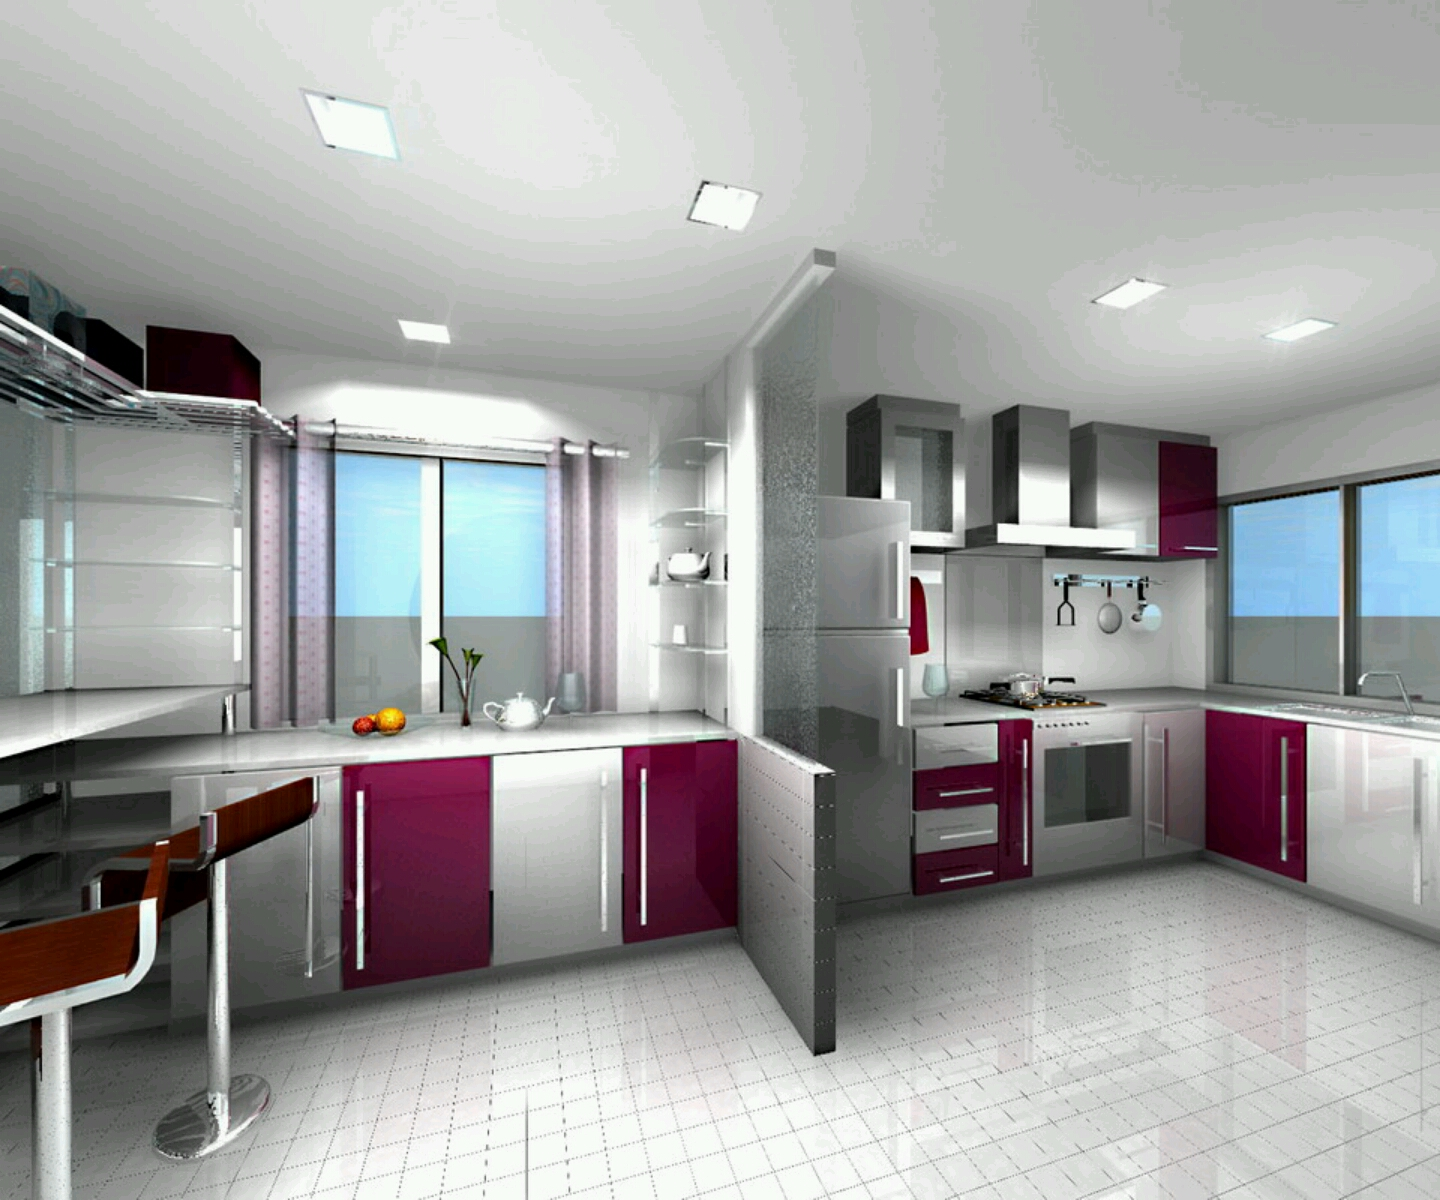 New home designs latest modern homes ultra modern kitchen designs ideas Home interior design ideas for kitchen